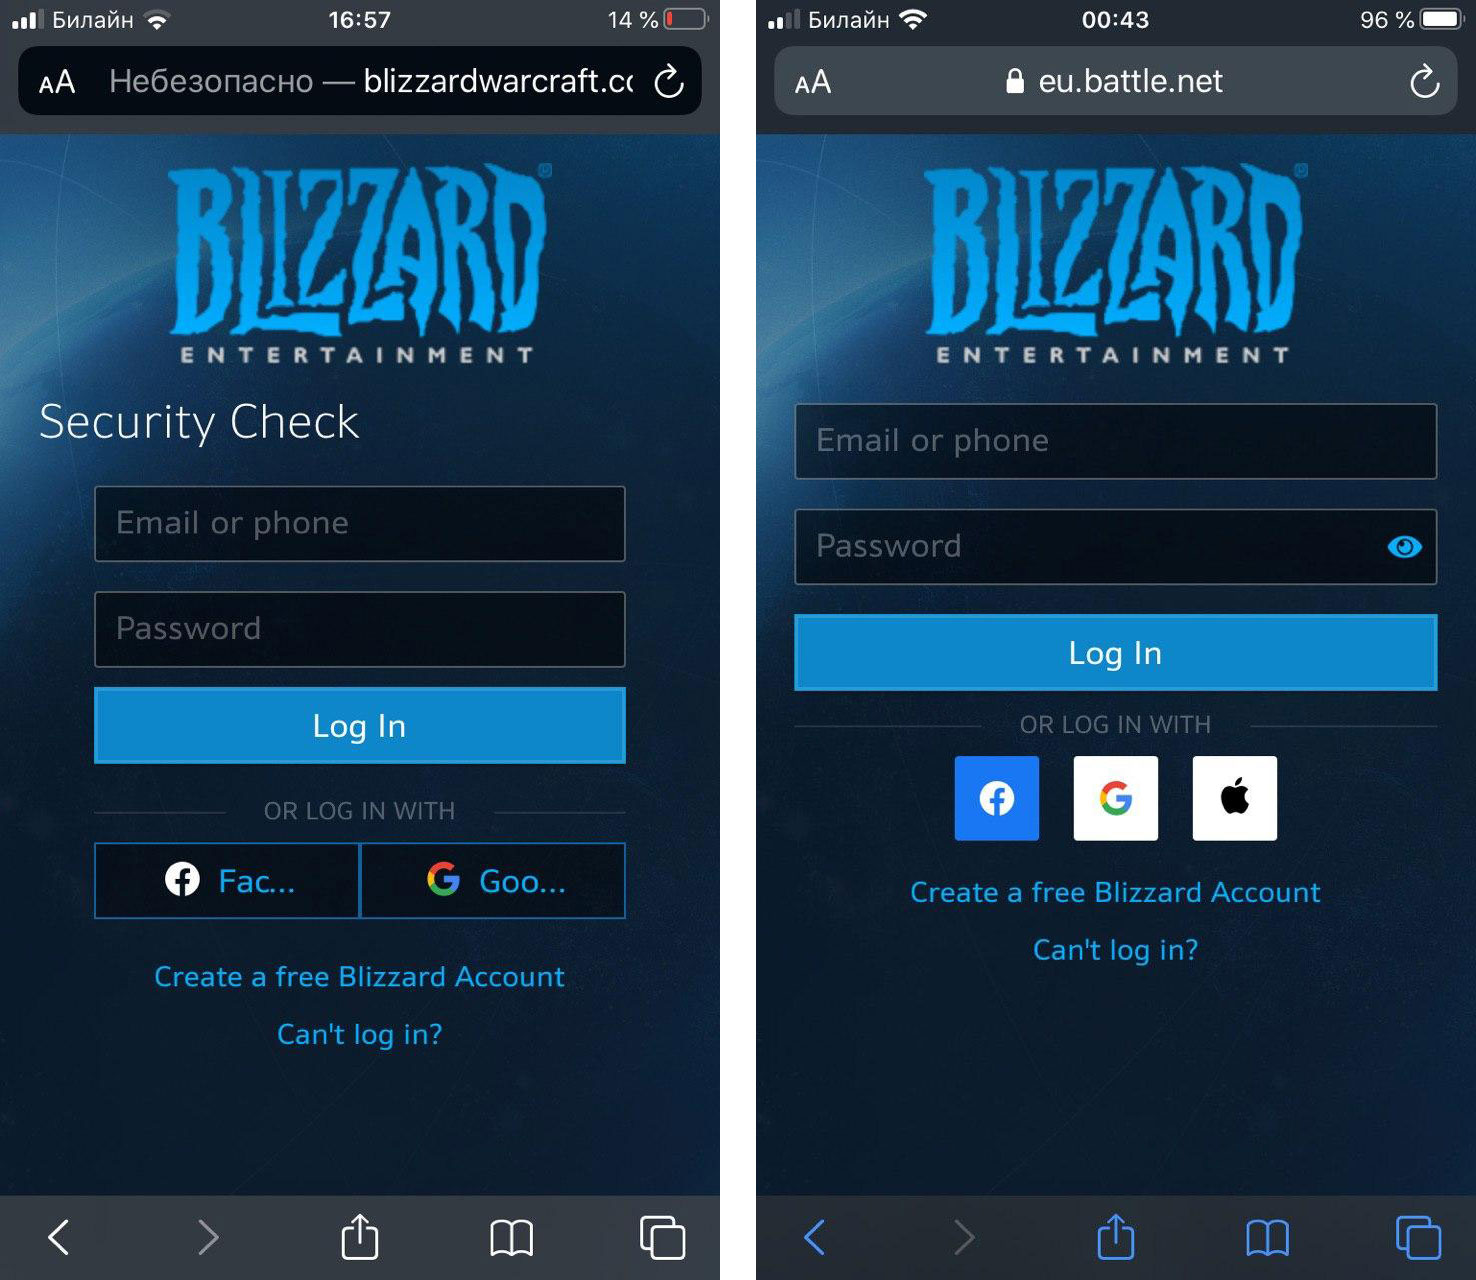 Comparing the fake Blizzard website with a real thing